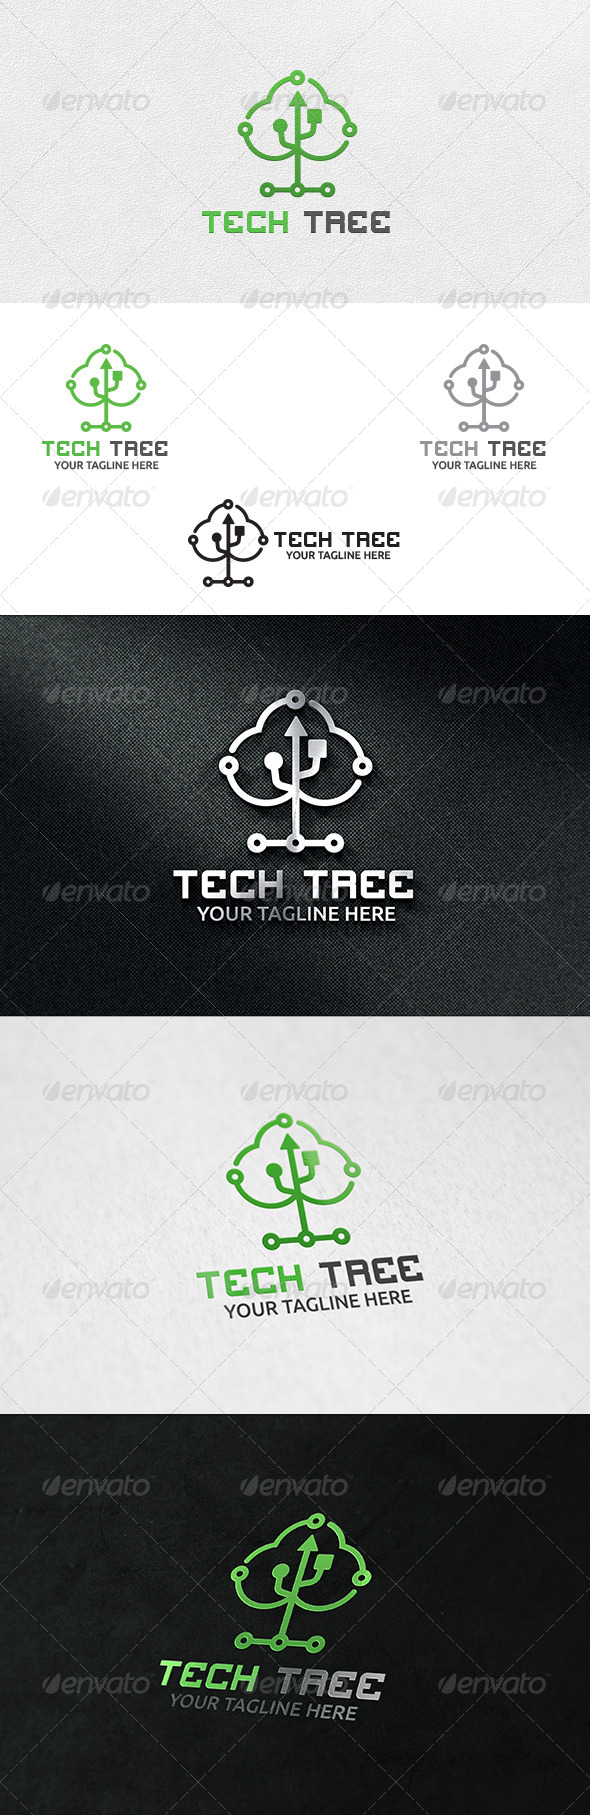 GraphicRiver Tech Tree Logo Template 6415831